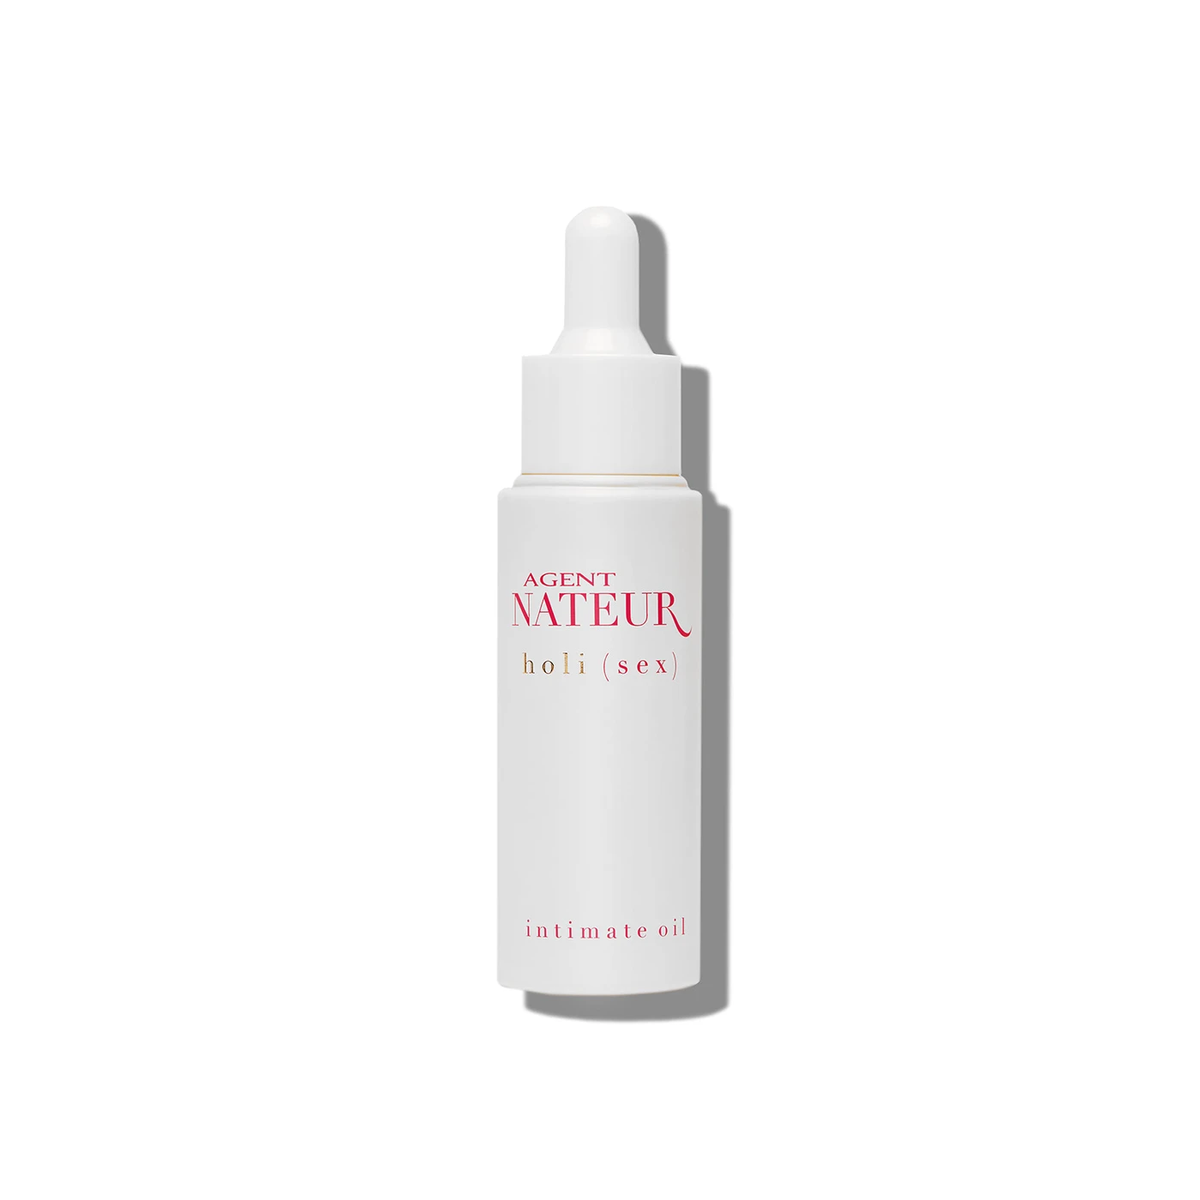 agent nateur | h o l i ( s e x ) - intimate oil[product_type ]agent nateur - Kiss and Makeup